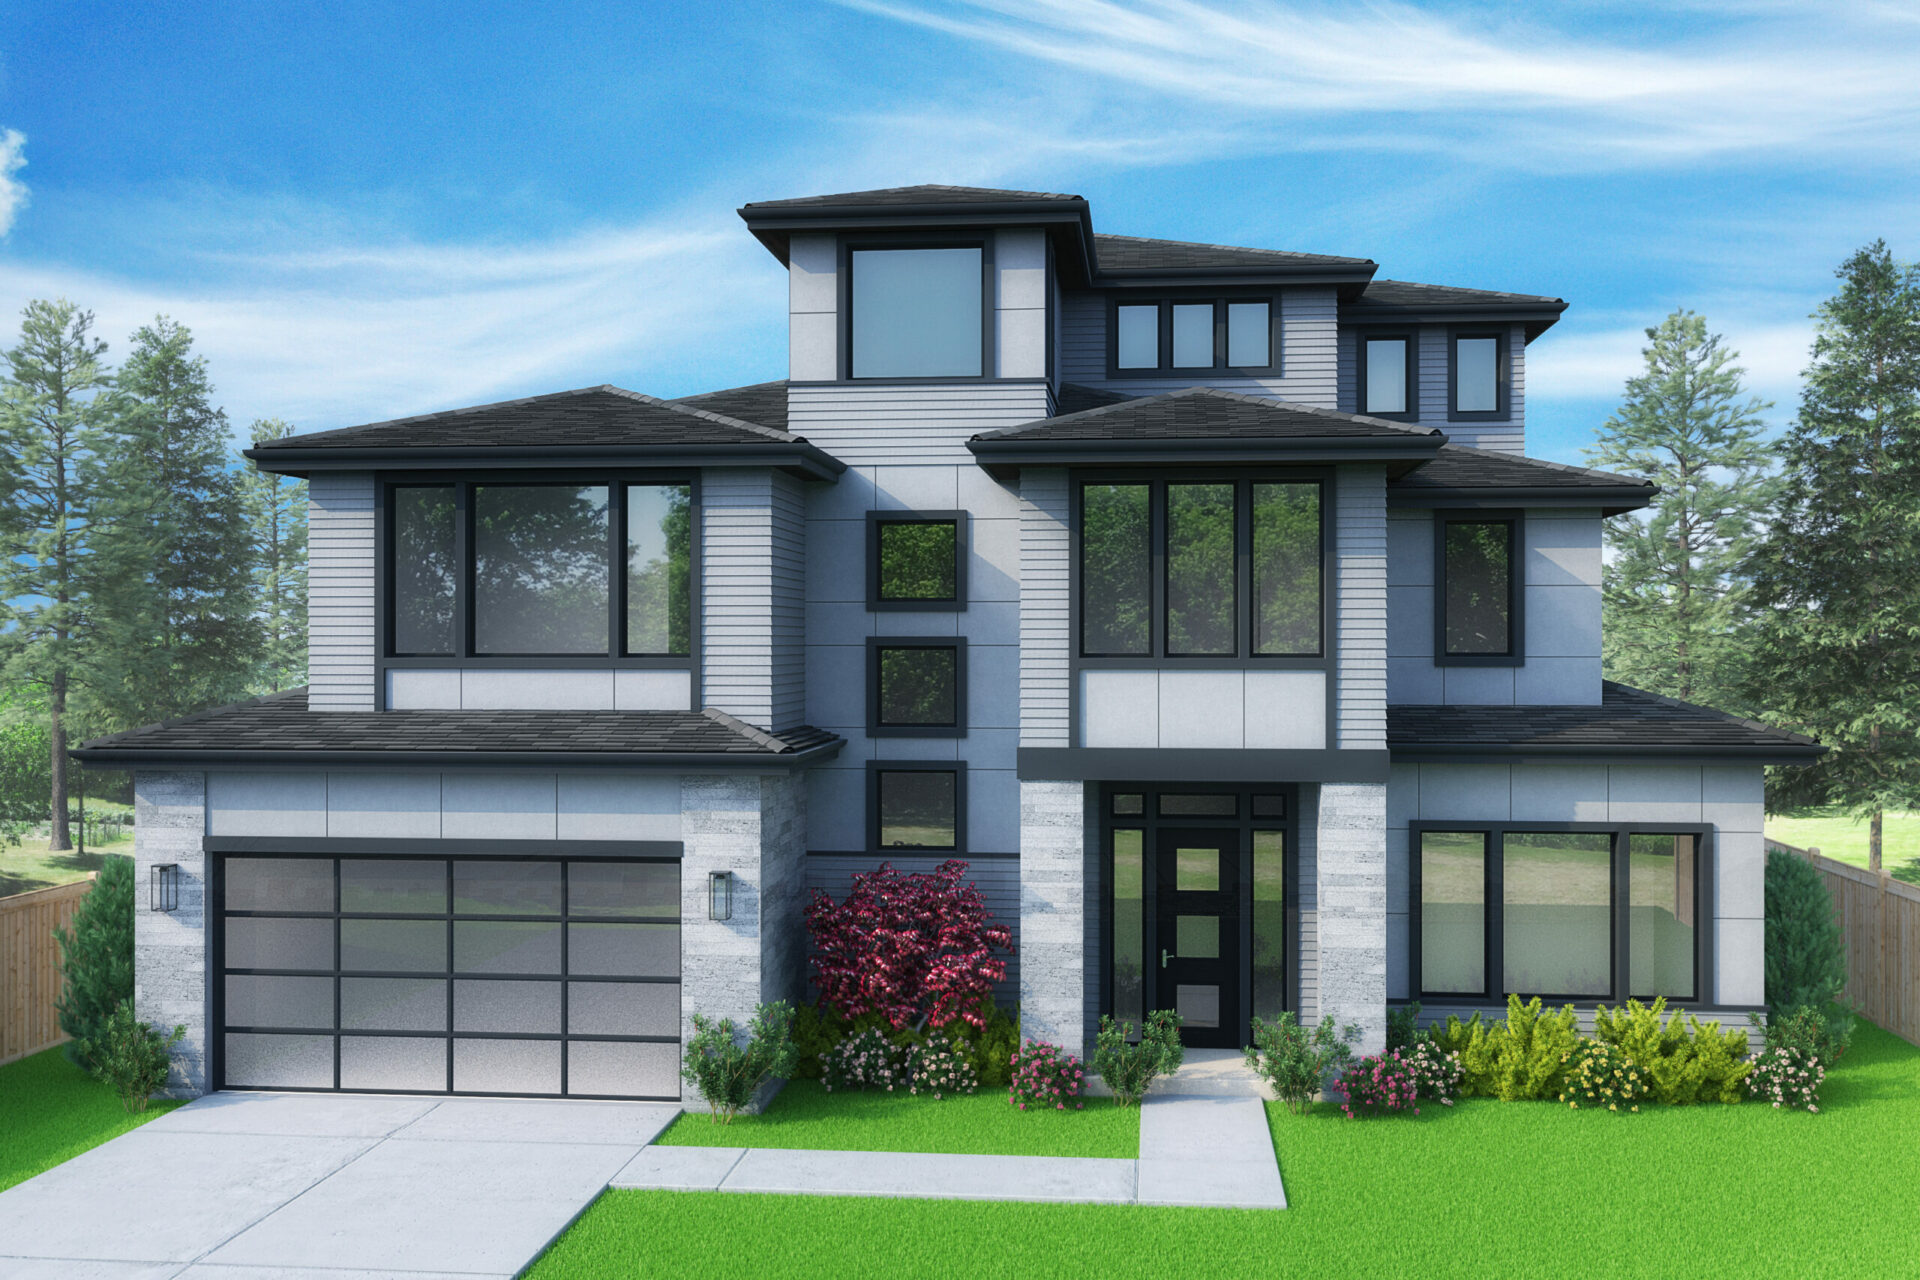 View our new luxury home construction on 10635 NE 26th St, in Bellevue, WA from MN Custom Homes